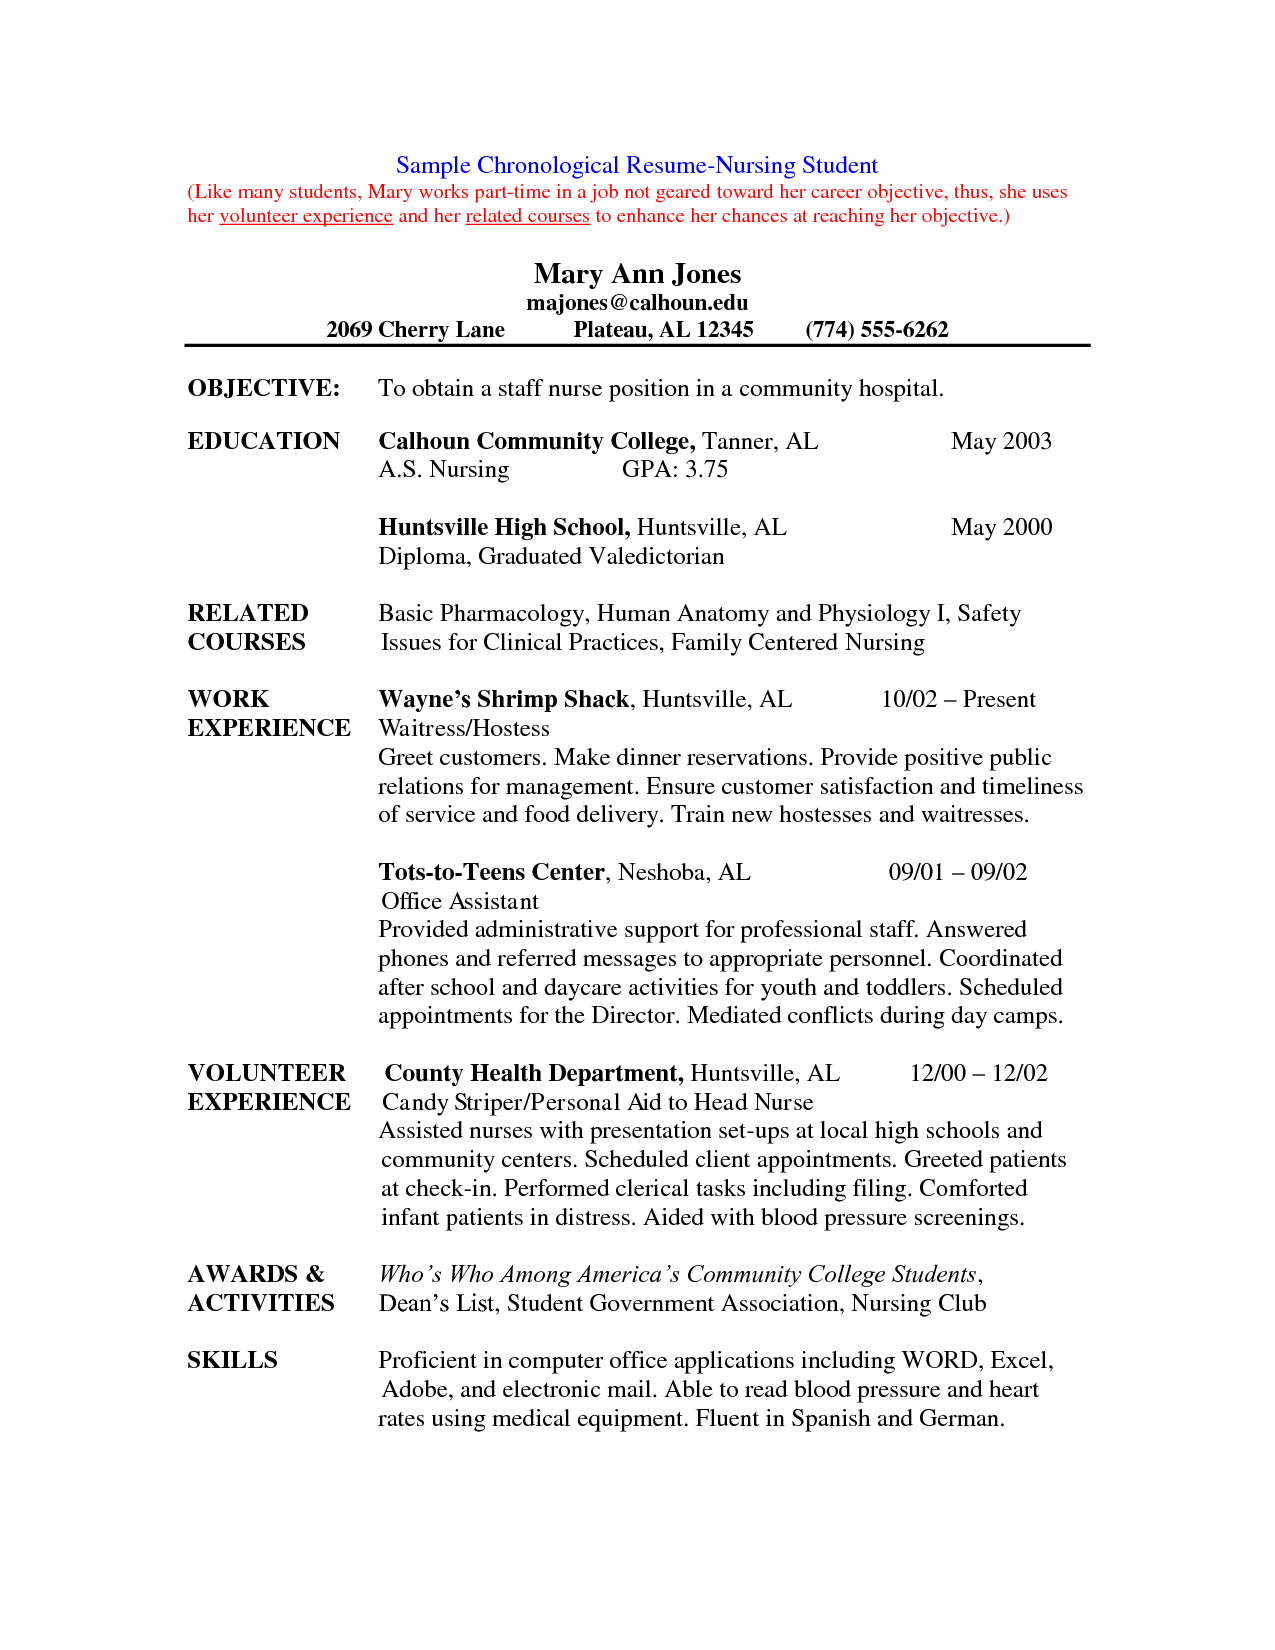 resume Staff Nurse Job Description For Resume how to format a college term paper using apa style resume with nurse cover letter for practitioner sample dayjob job description nursing assistant